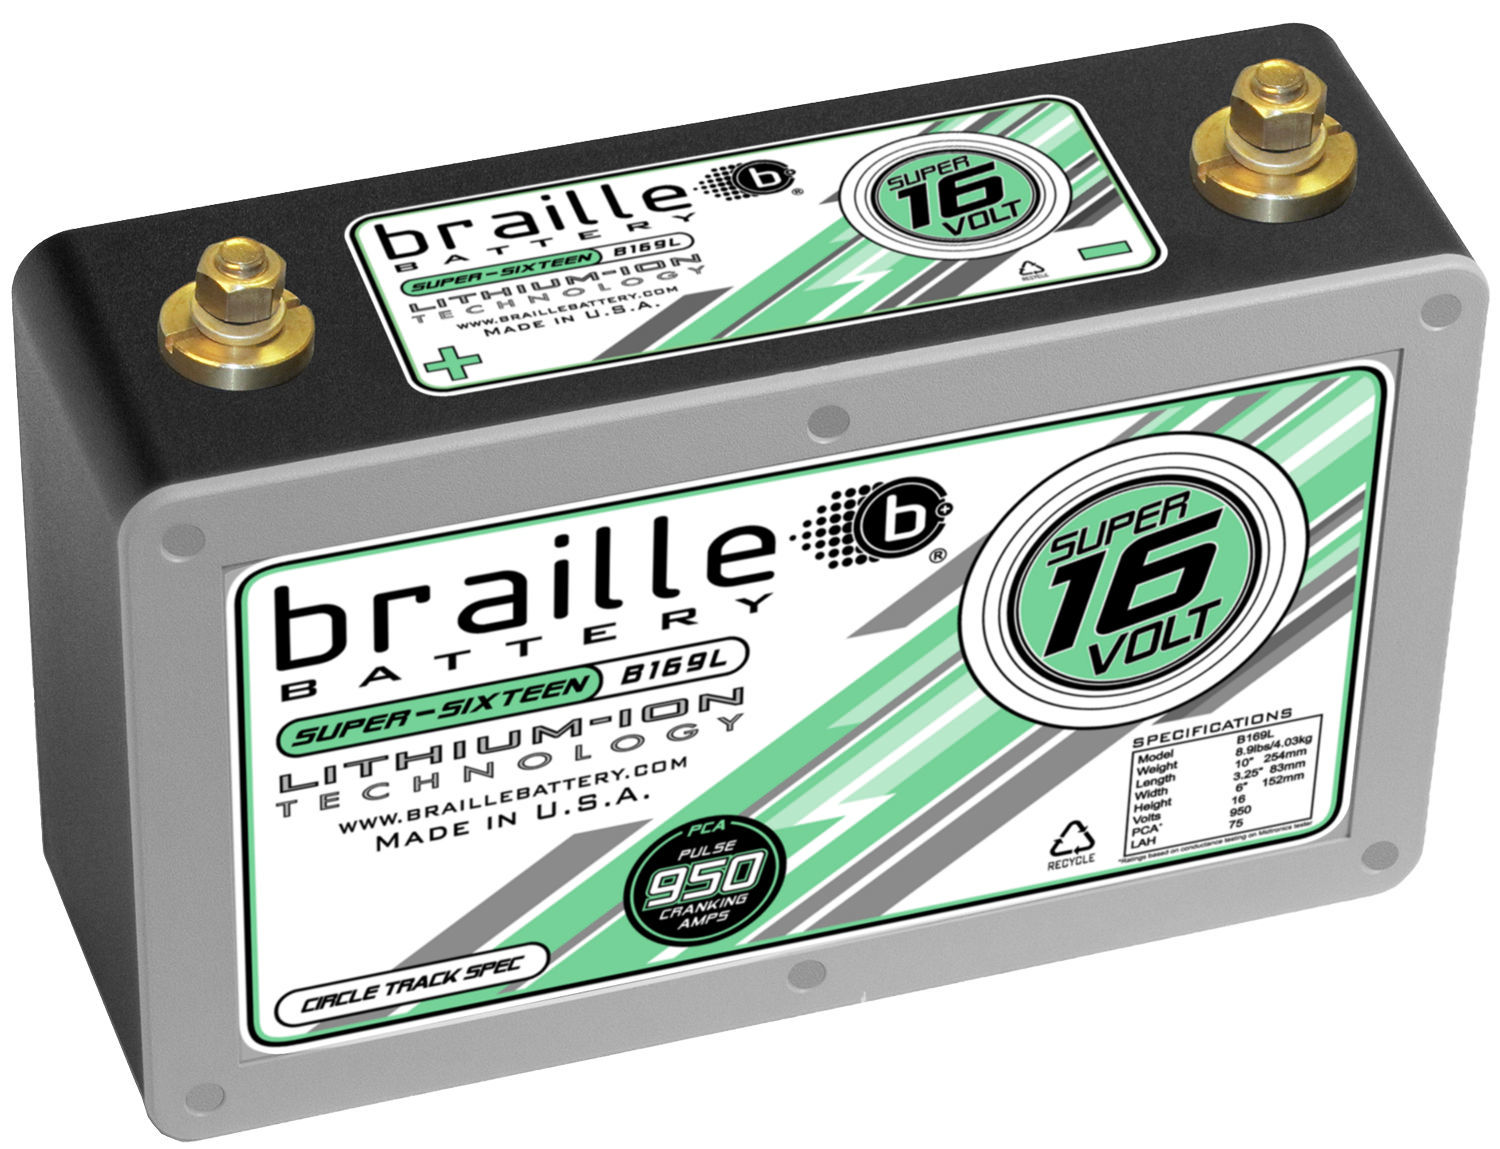 Braille Auto Battery B169L Battery, Super-Sixteen, Lithium-ion, 16V, 950 Pulse Cranking Amp, Threaded Terminals, 10.00 in L x 6.15 in H x 3.25 in W, Each